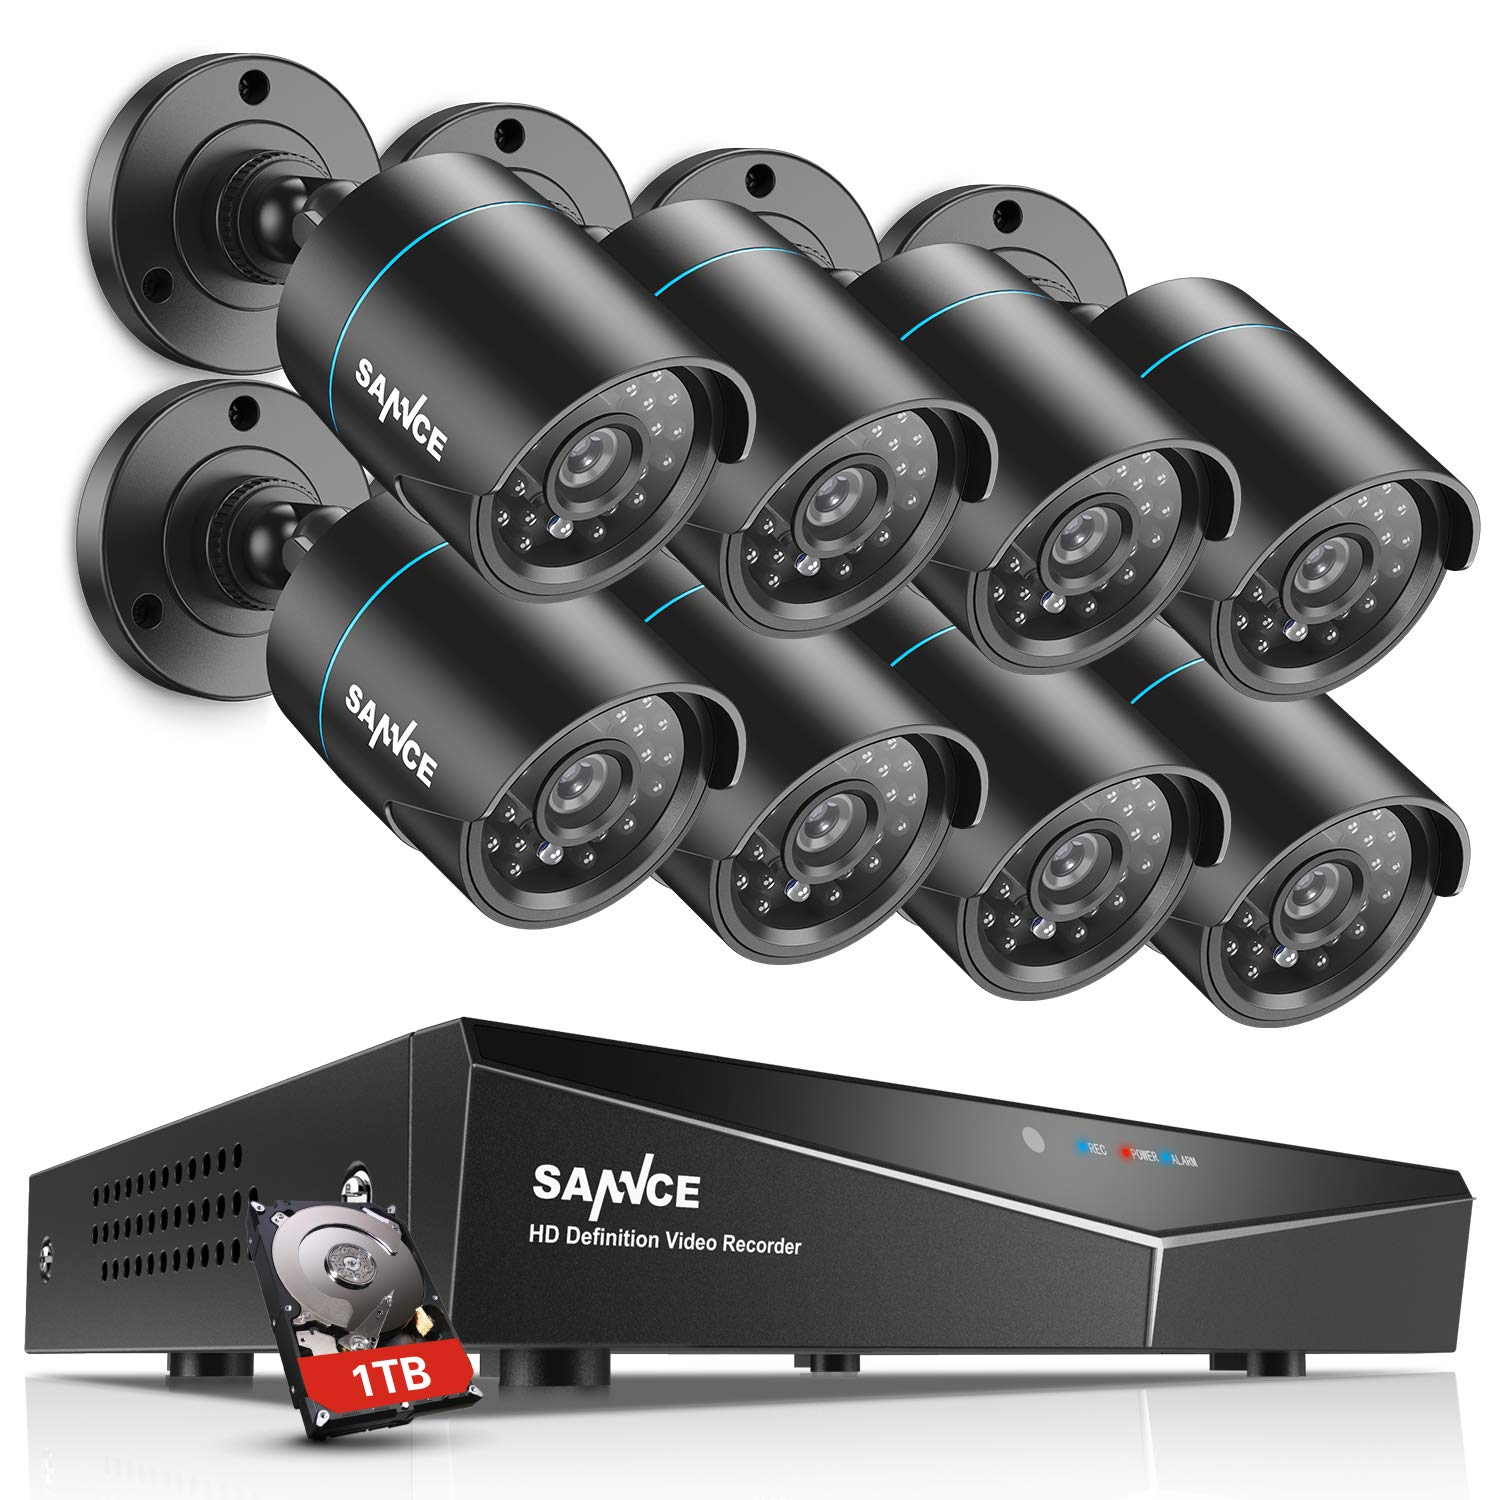 SANNCE 8 Channel HDMI CCTV 1080N Security Surveillance DVR System with 8 x 1500TVL 720p High Resolution Weatherproof Security Cameras and 1TB Hard Drive Included,Email Alarm, Phone Access